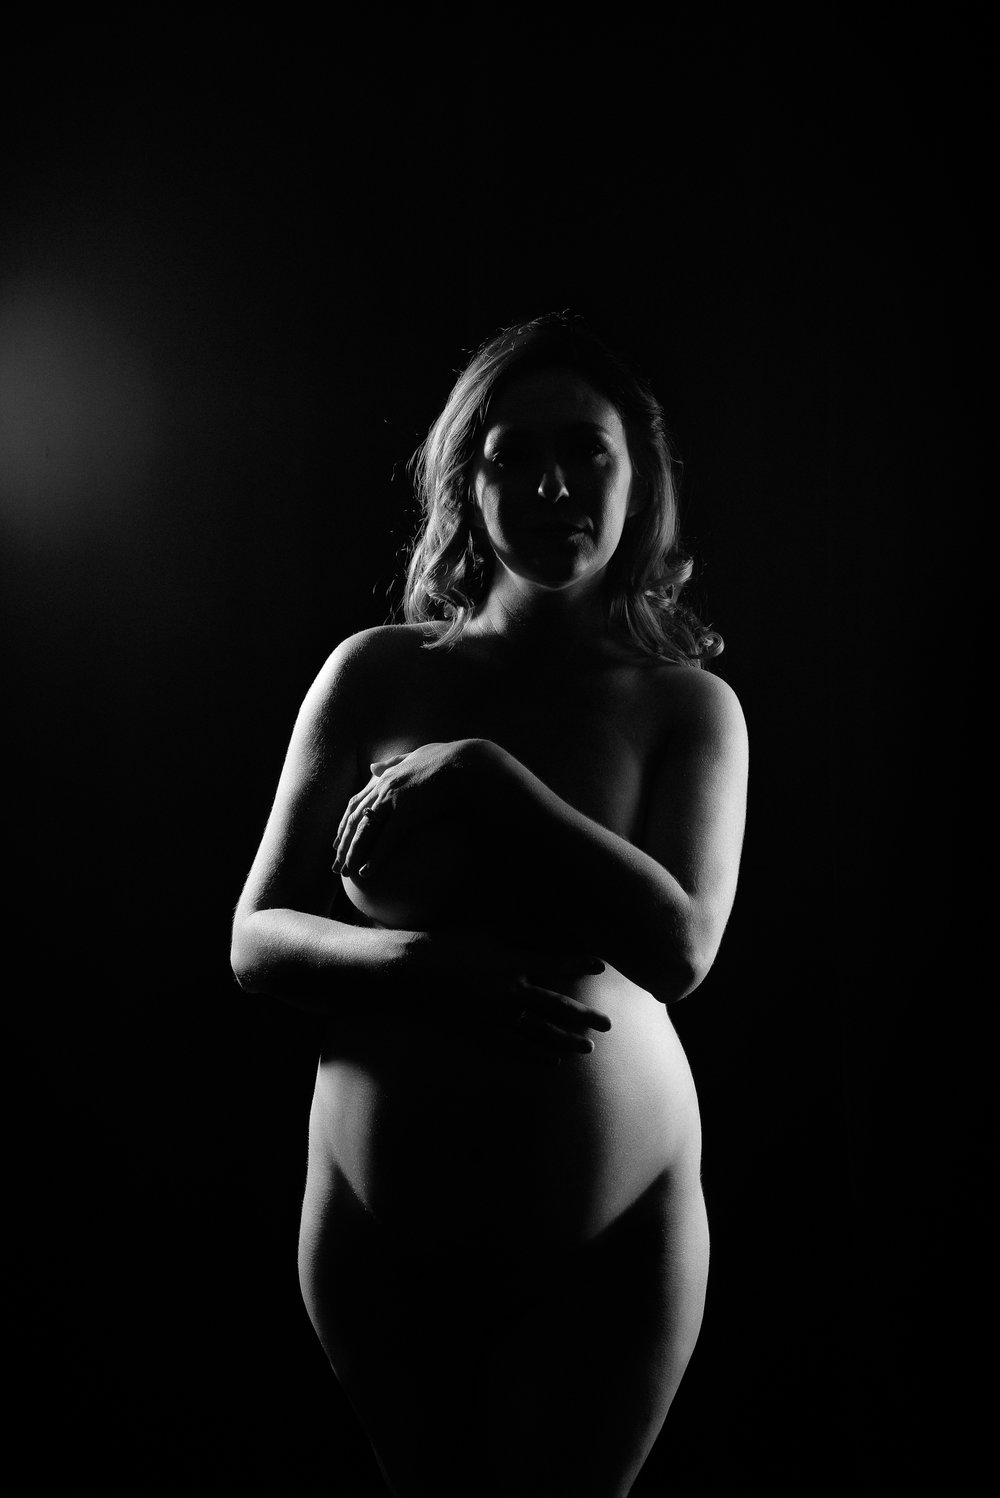 Black and white fine art maternity portrait photographer